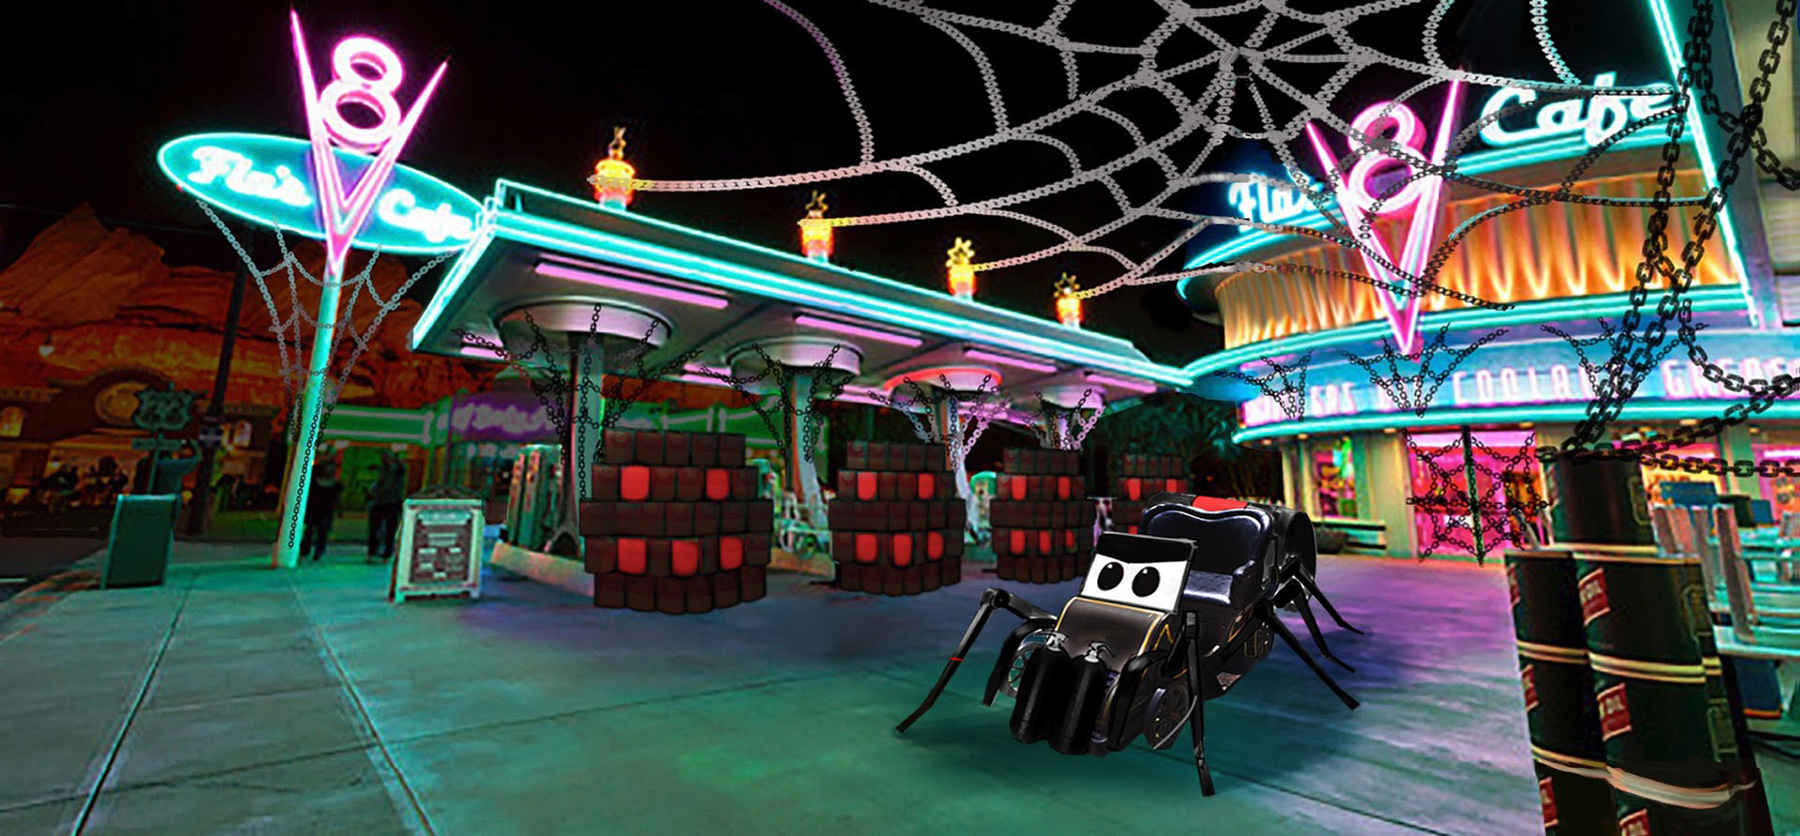 Spider Car spins her web at Flo's